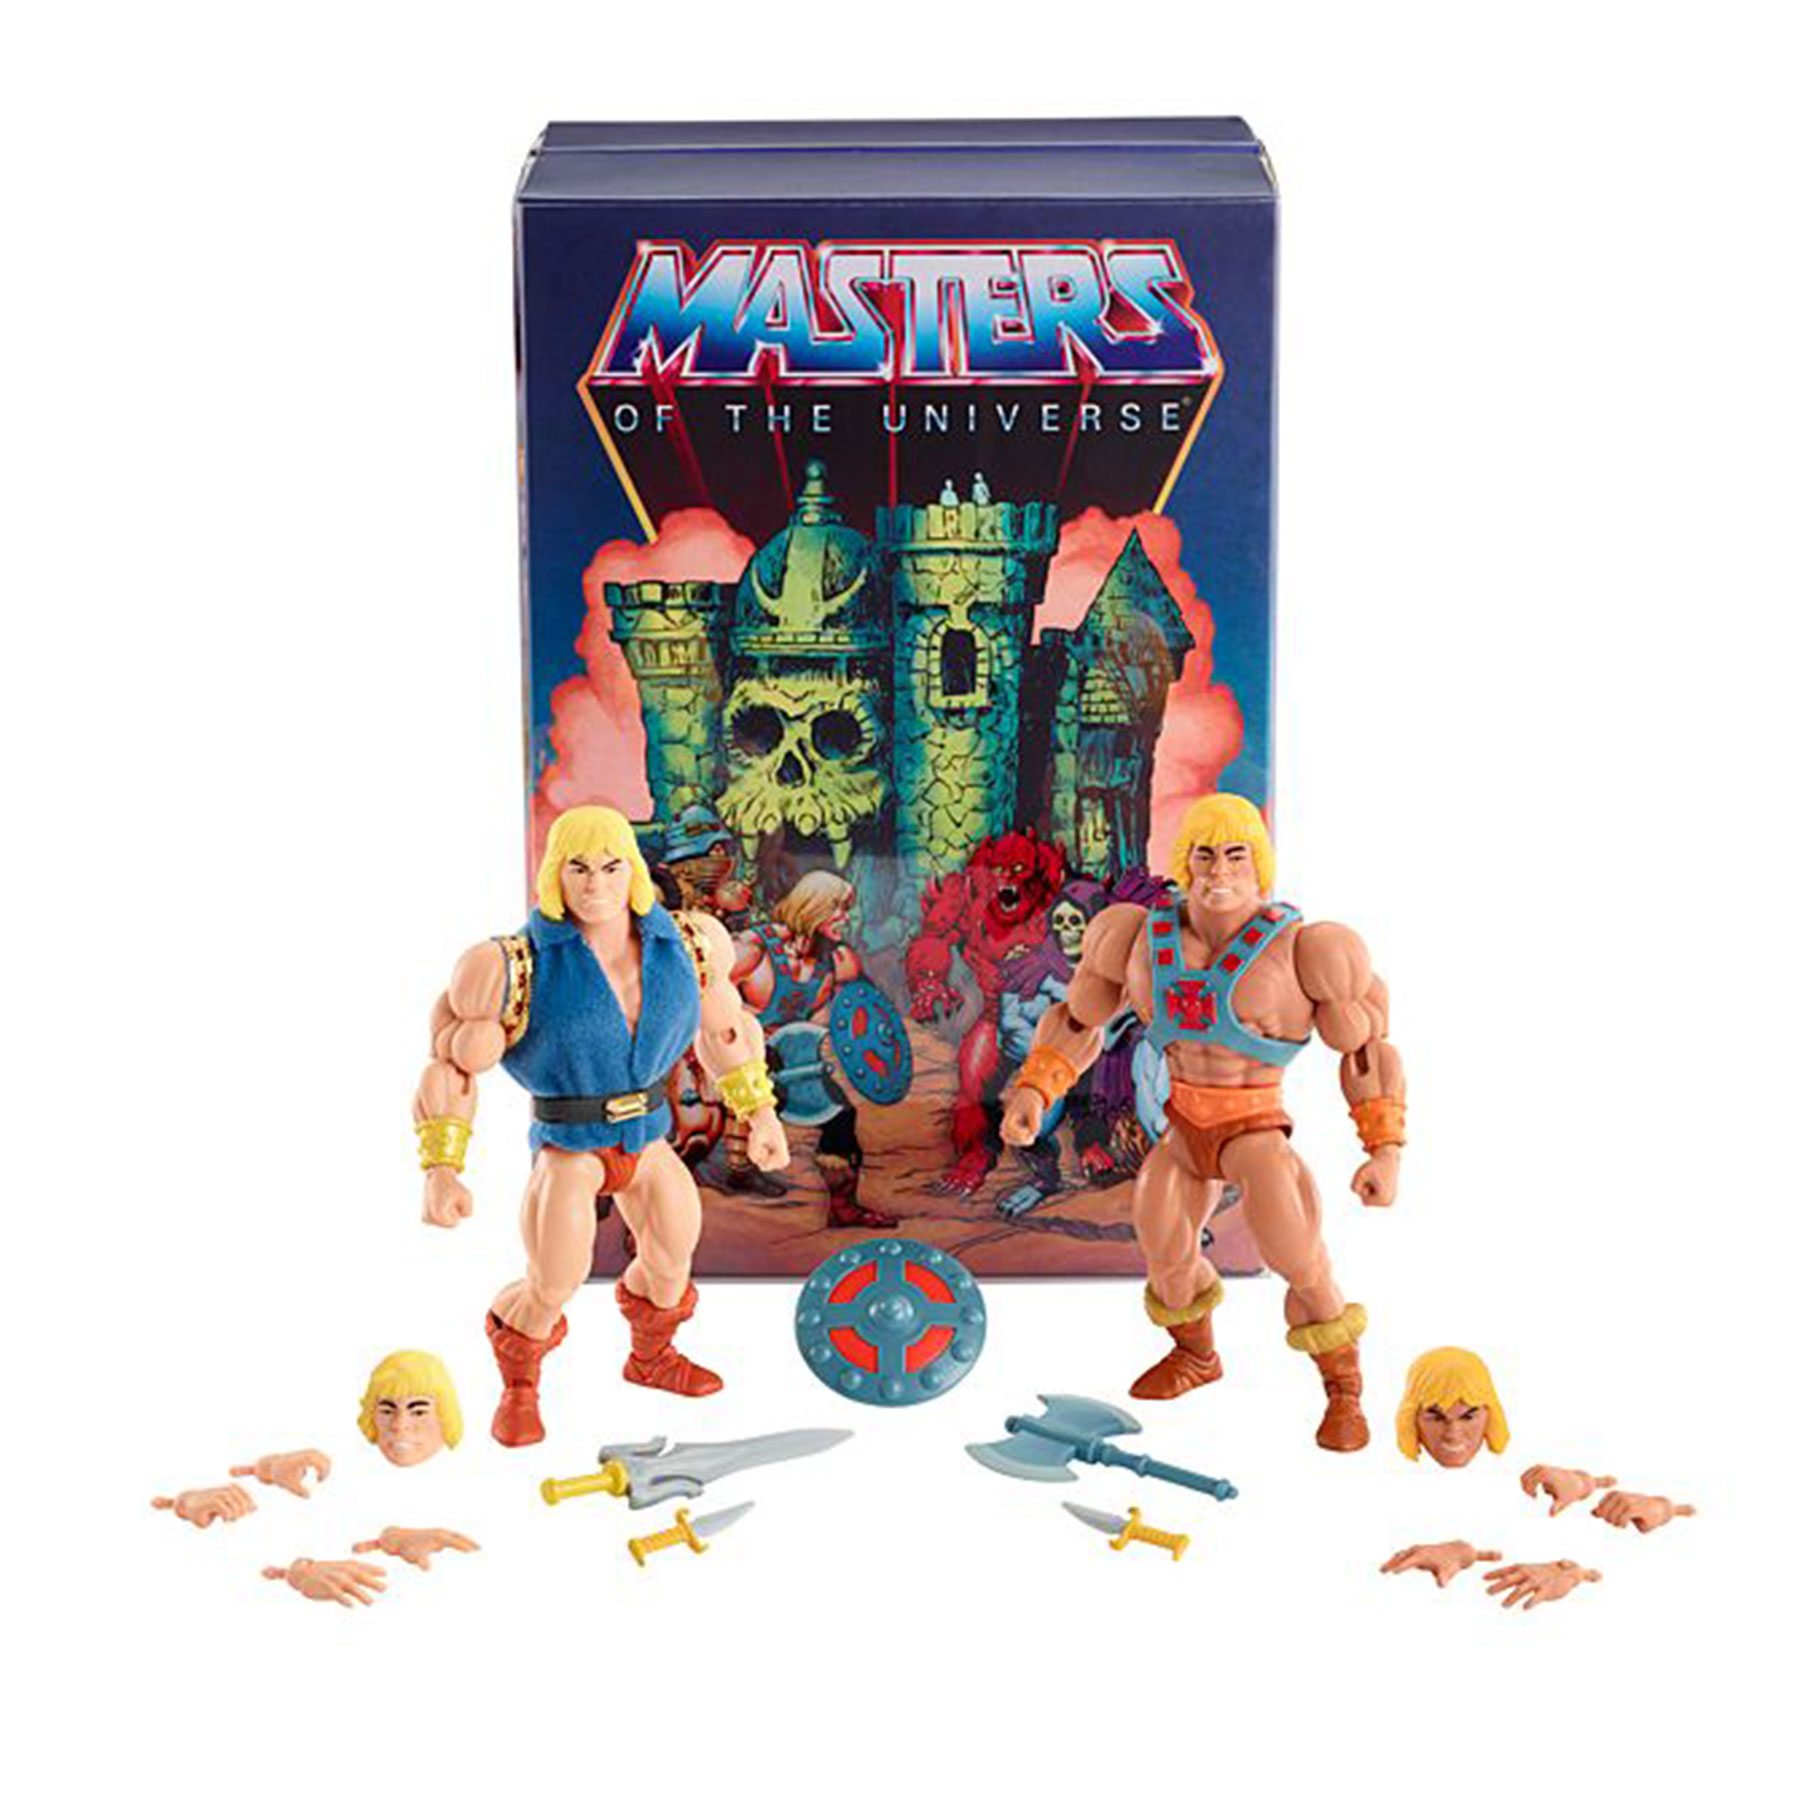 He-Man & Prince Adam from Masters of the Universe